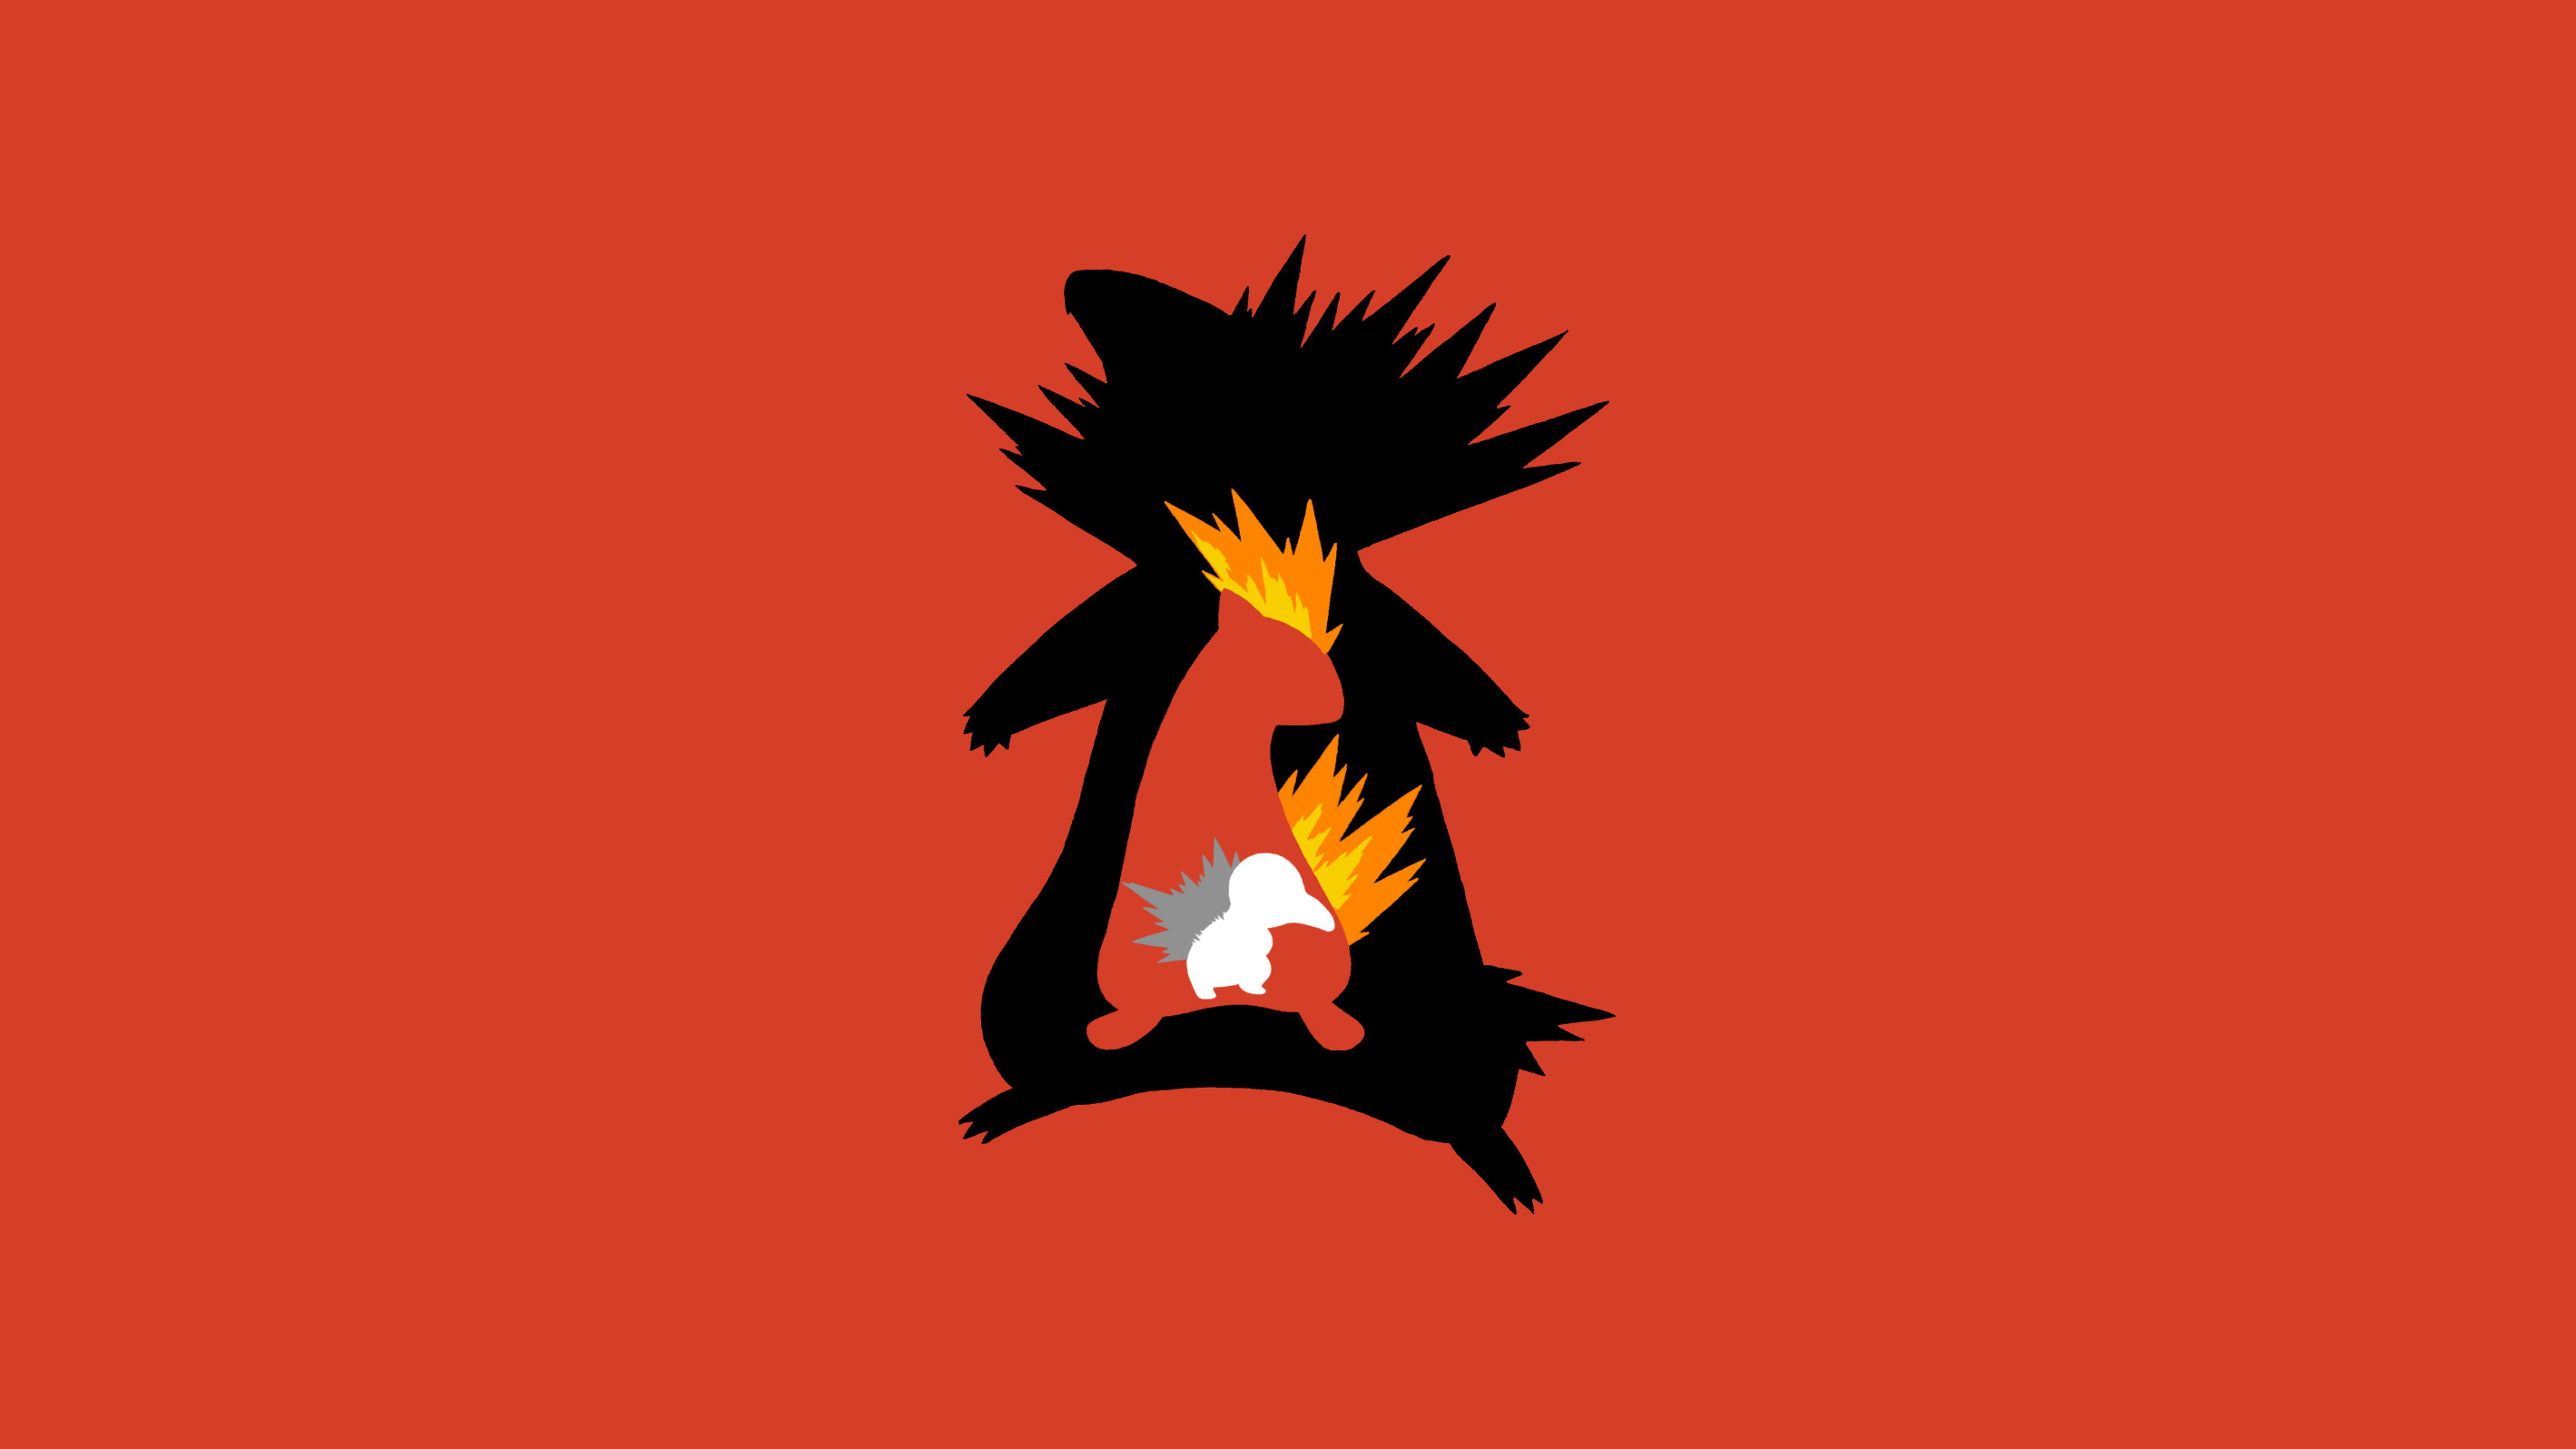 2838x1596 Cyndaquil Pokemon Evolution Wallpaper Wallpaper